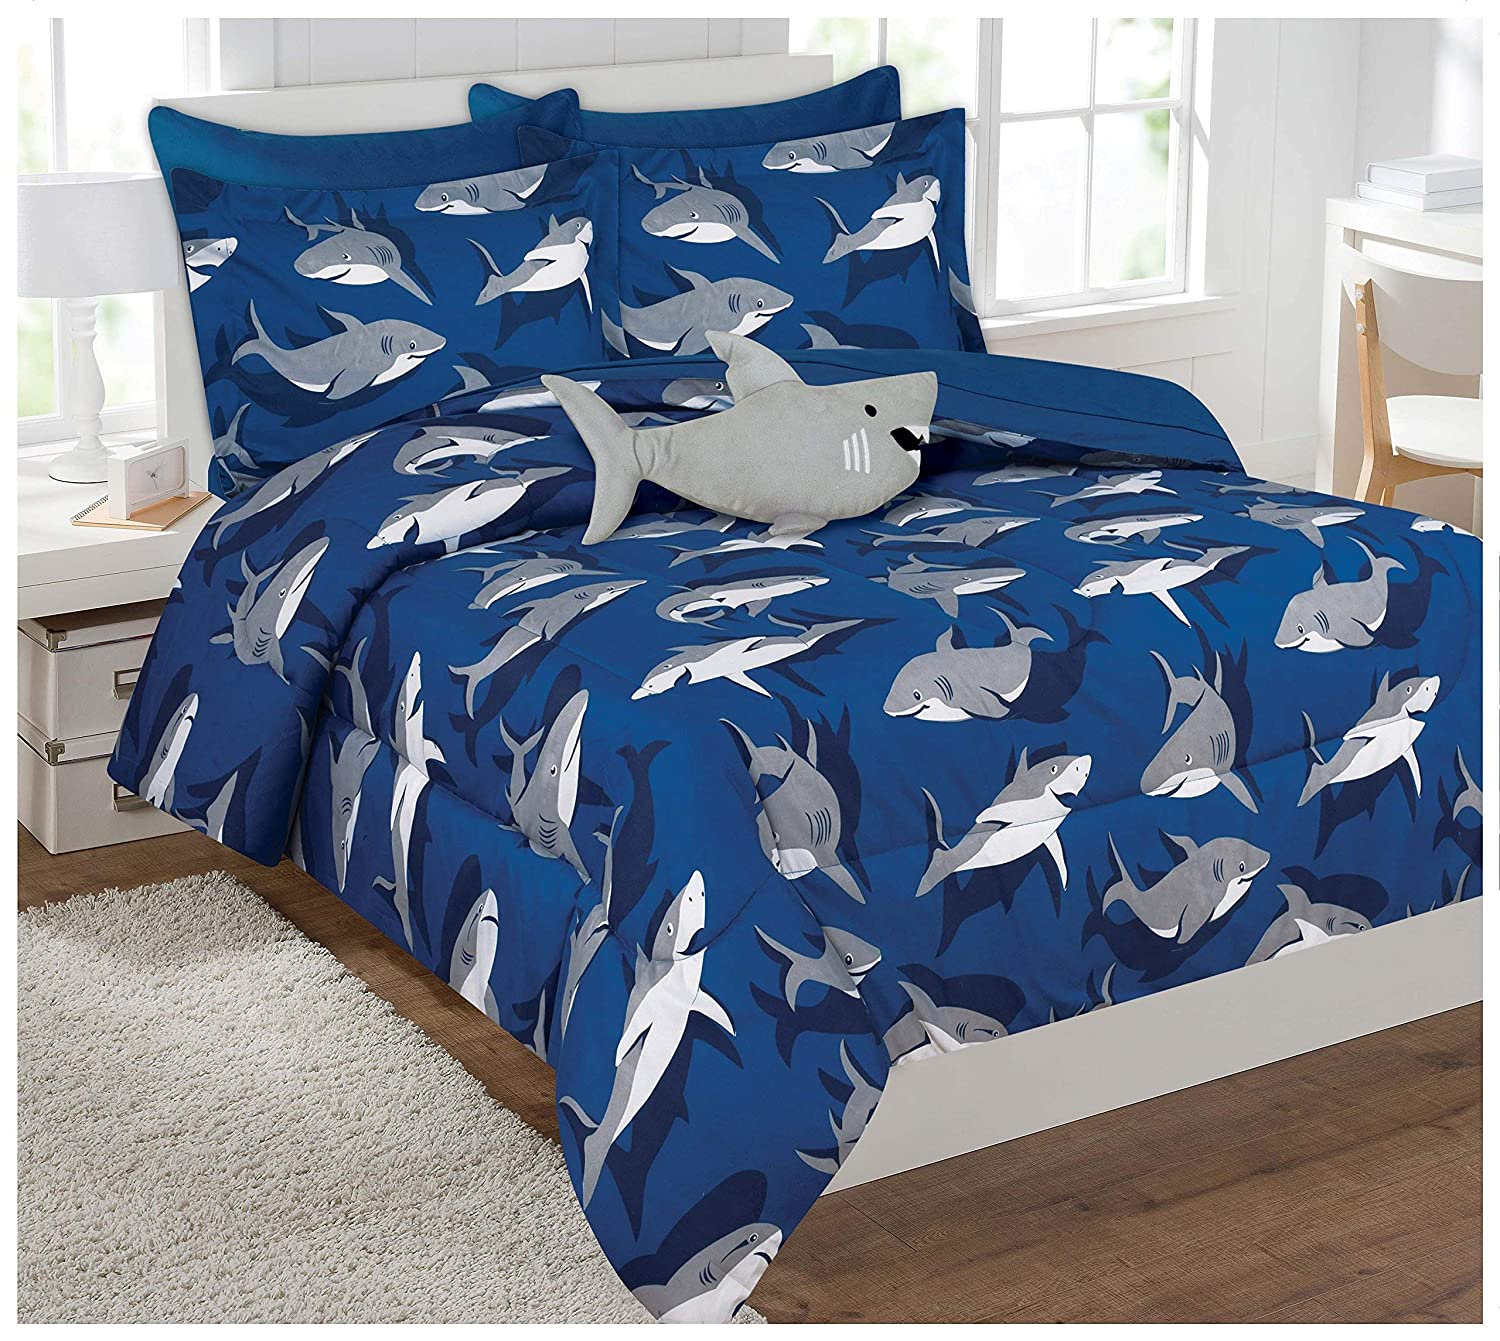 Twin & Full 6 Pcs or 8 Pcs Comforter/ Coverlet / Bed in Bag Set with Toy (Twin, Shark)